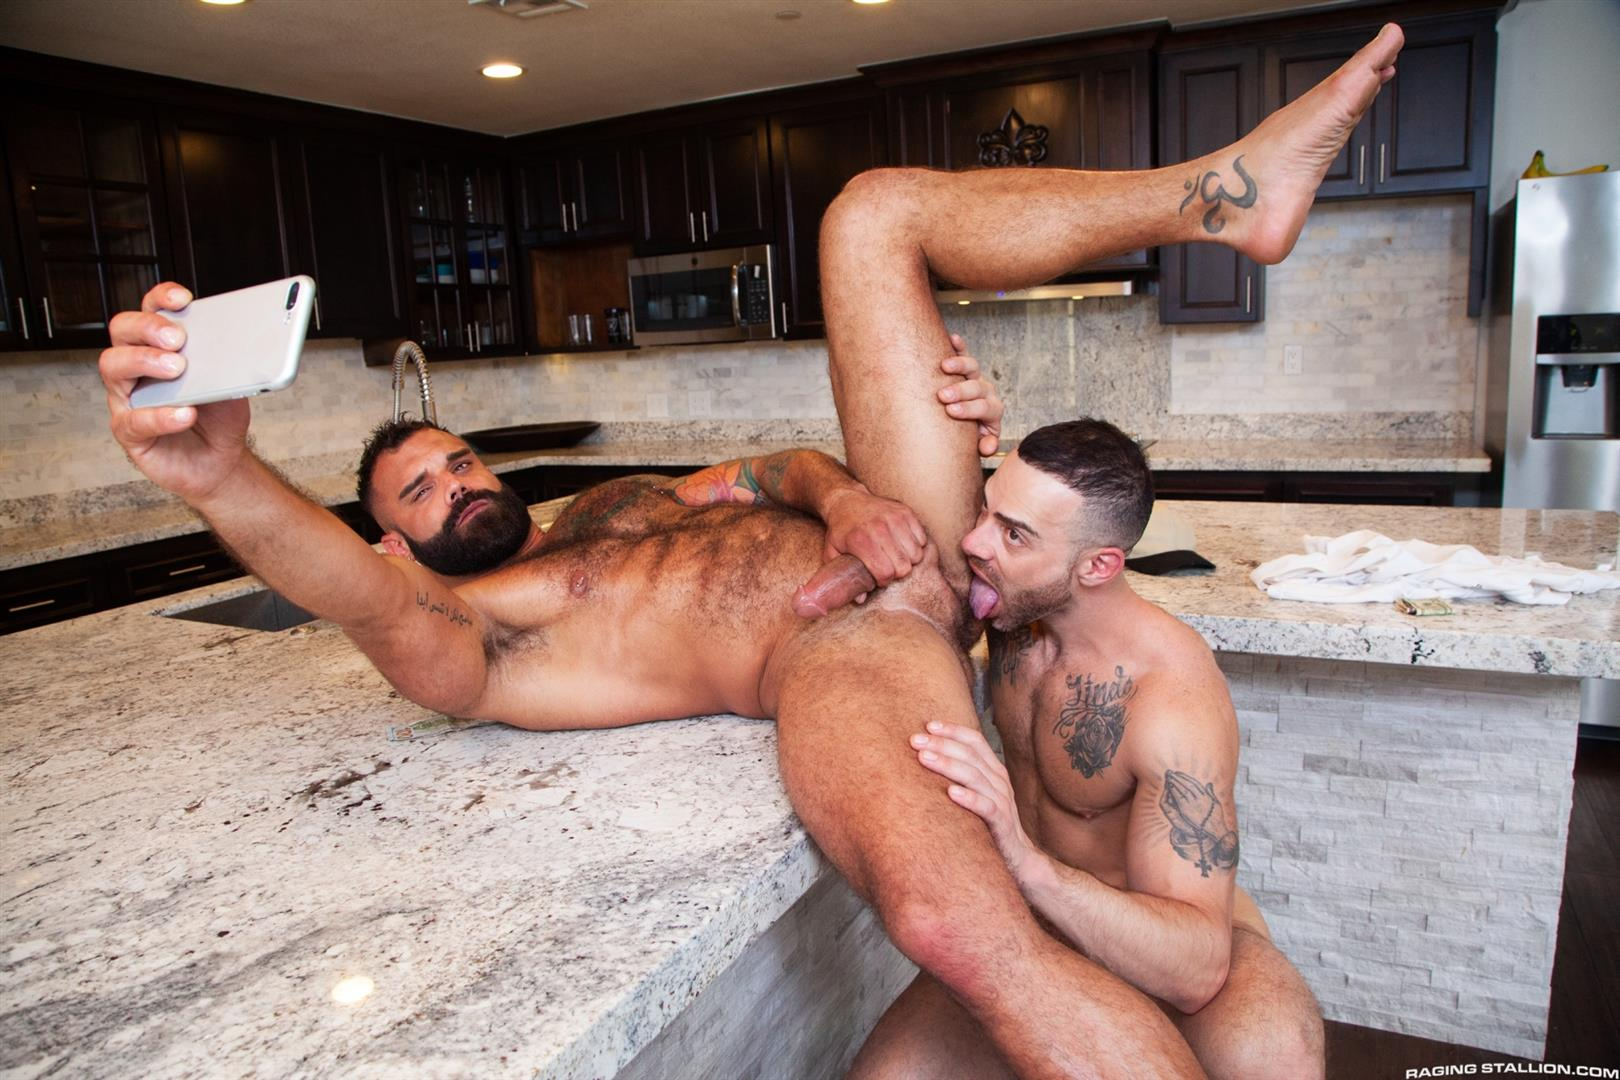 Raging-Stallion-Drake-Masters-and-Carlos-Lindo-Hairy-Muscle-Guy-With-Big-Dick-Blowjob-13 Hairy Muscle Hunk Drake Masters Gets Rimmed And Sucked Off By The Delivery Driver